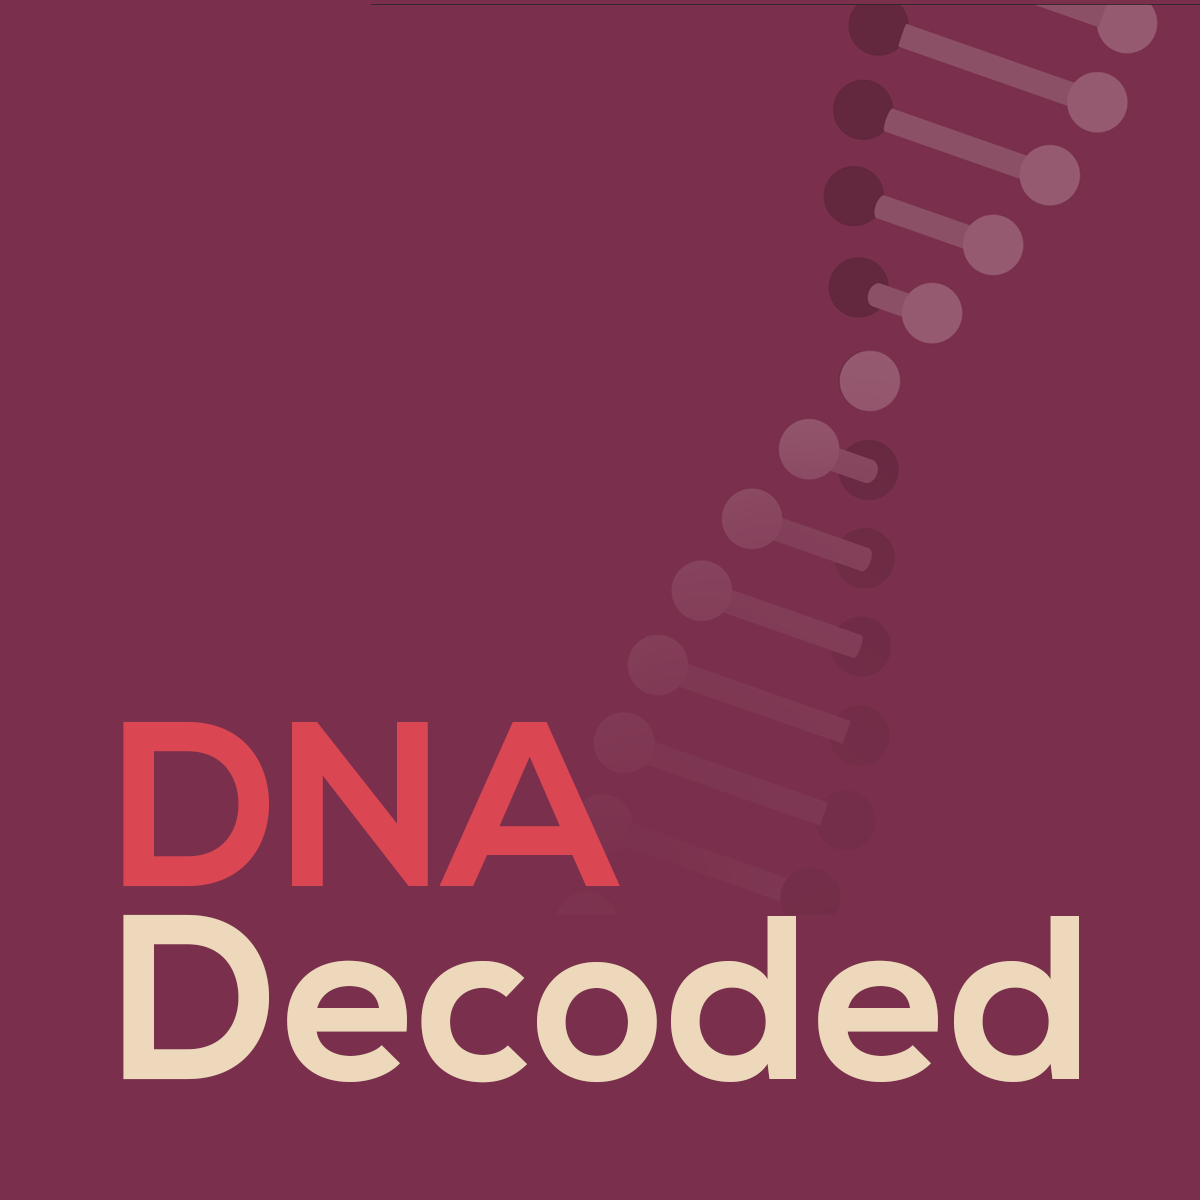 DNA Decoded course | OfCourseMe | All Online Courses in One